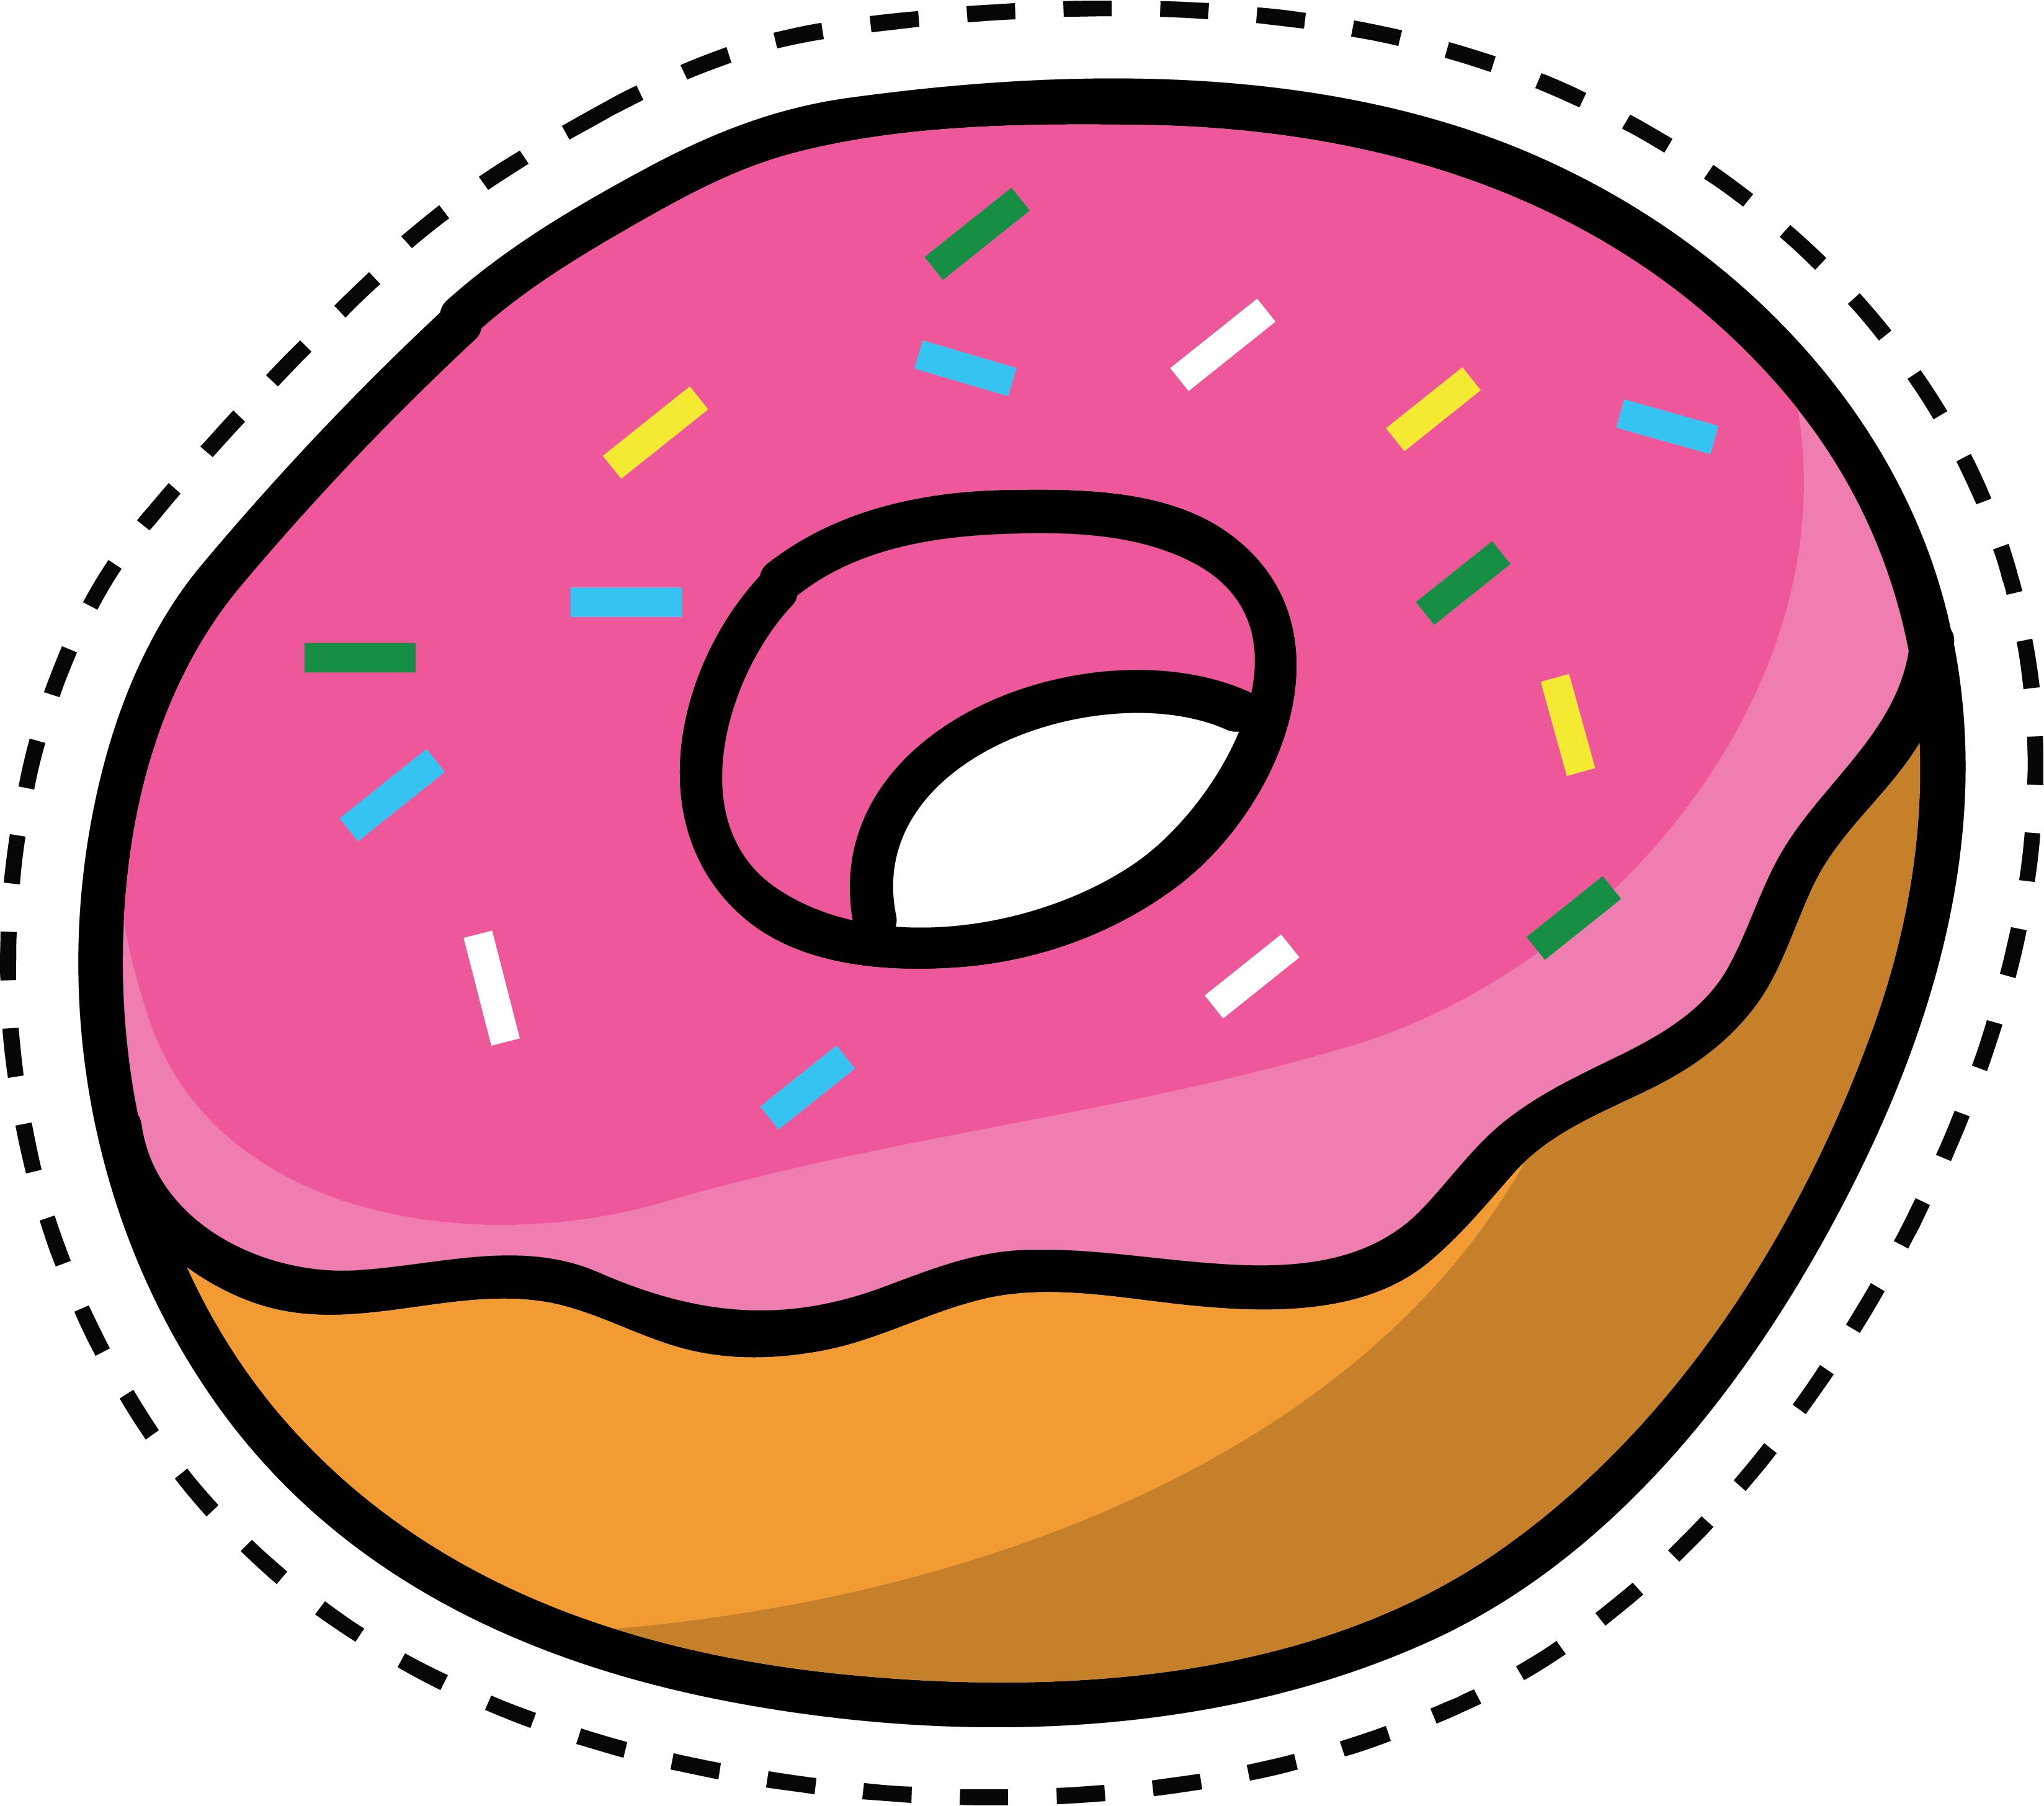 pink super mezcal presidents tequila bowl viewing clipart donut cute png transparent cartoon jing fm pink super mezcal presidents tequila